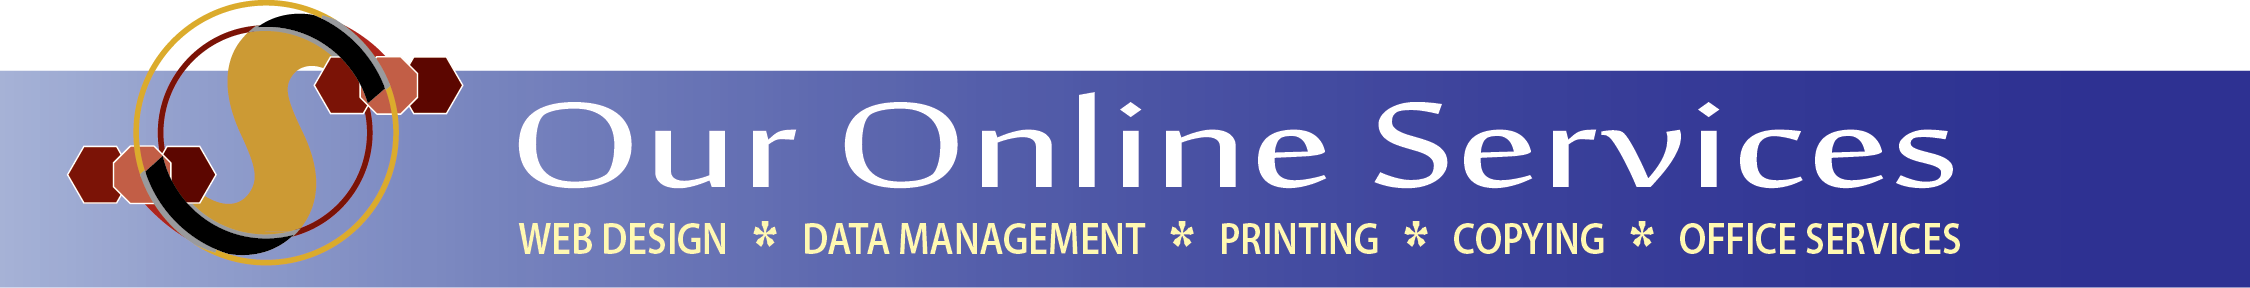 Our Online Services Logo